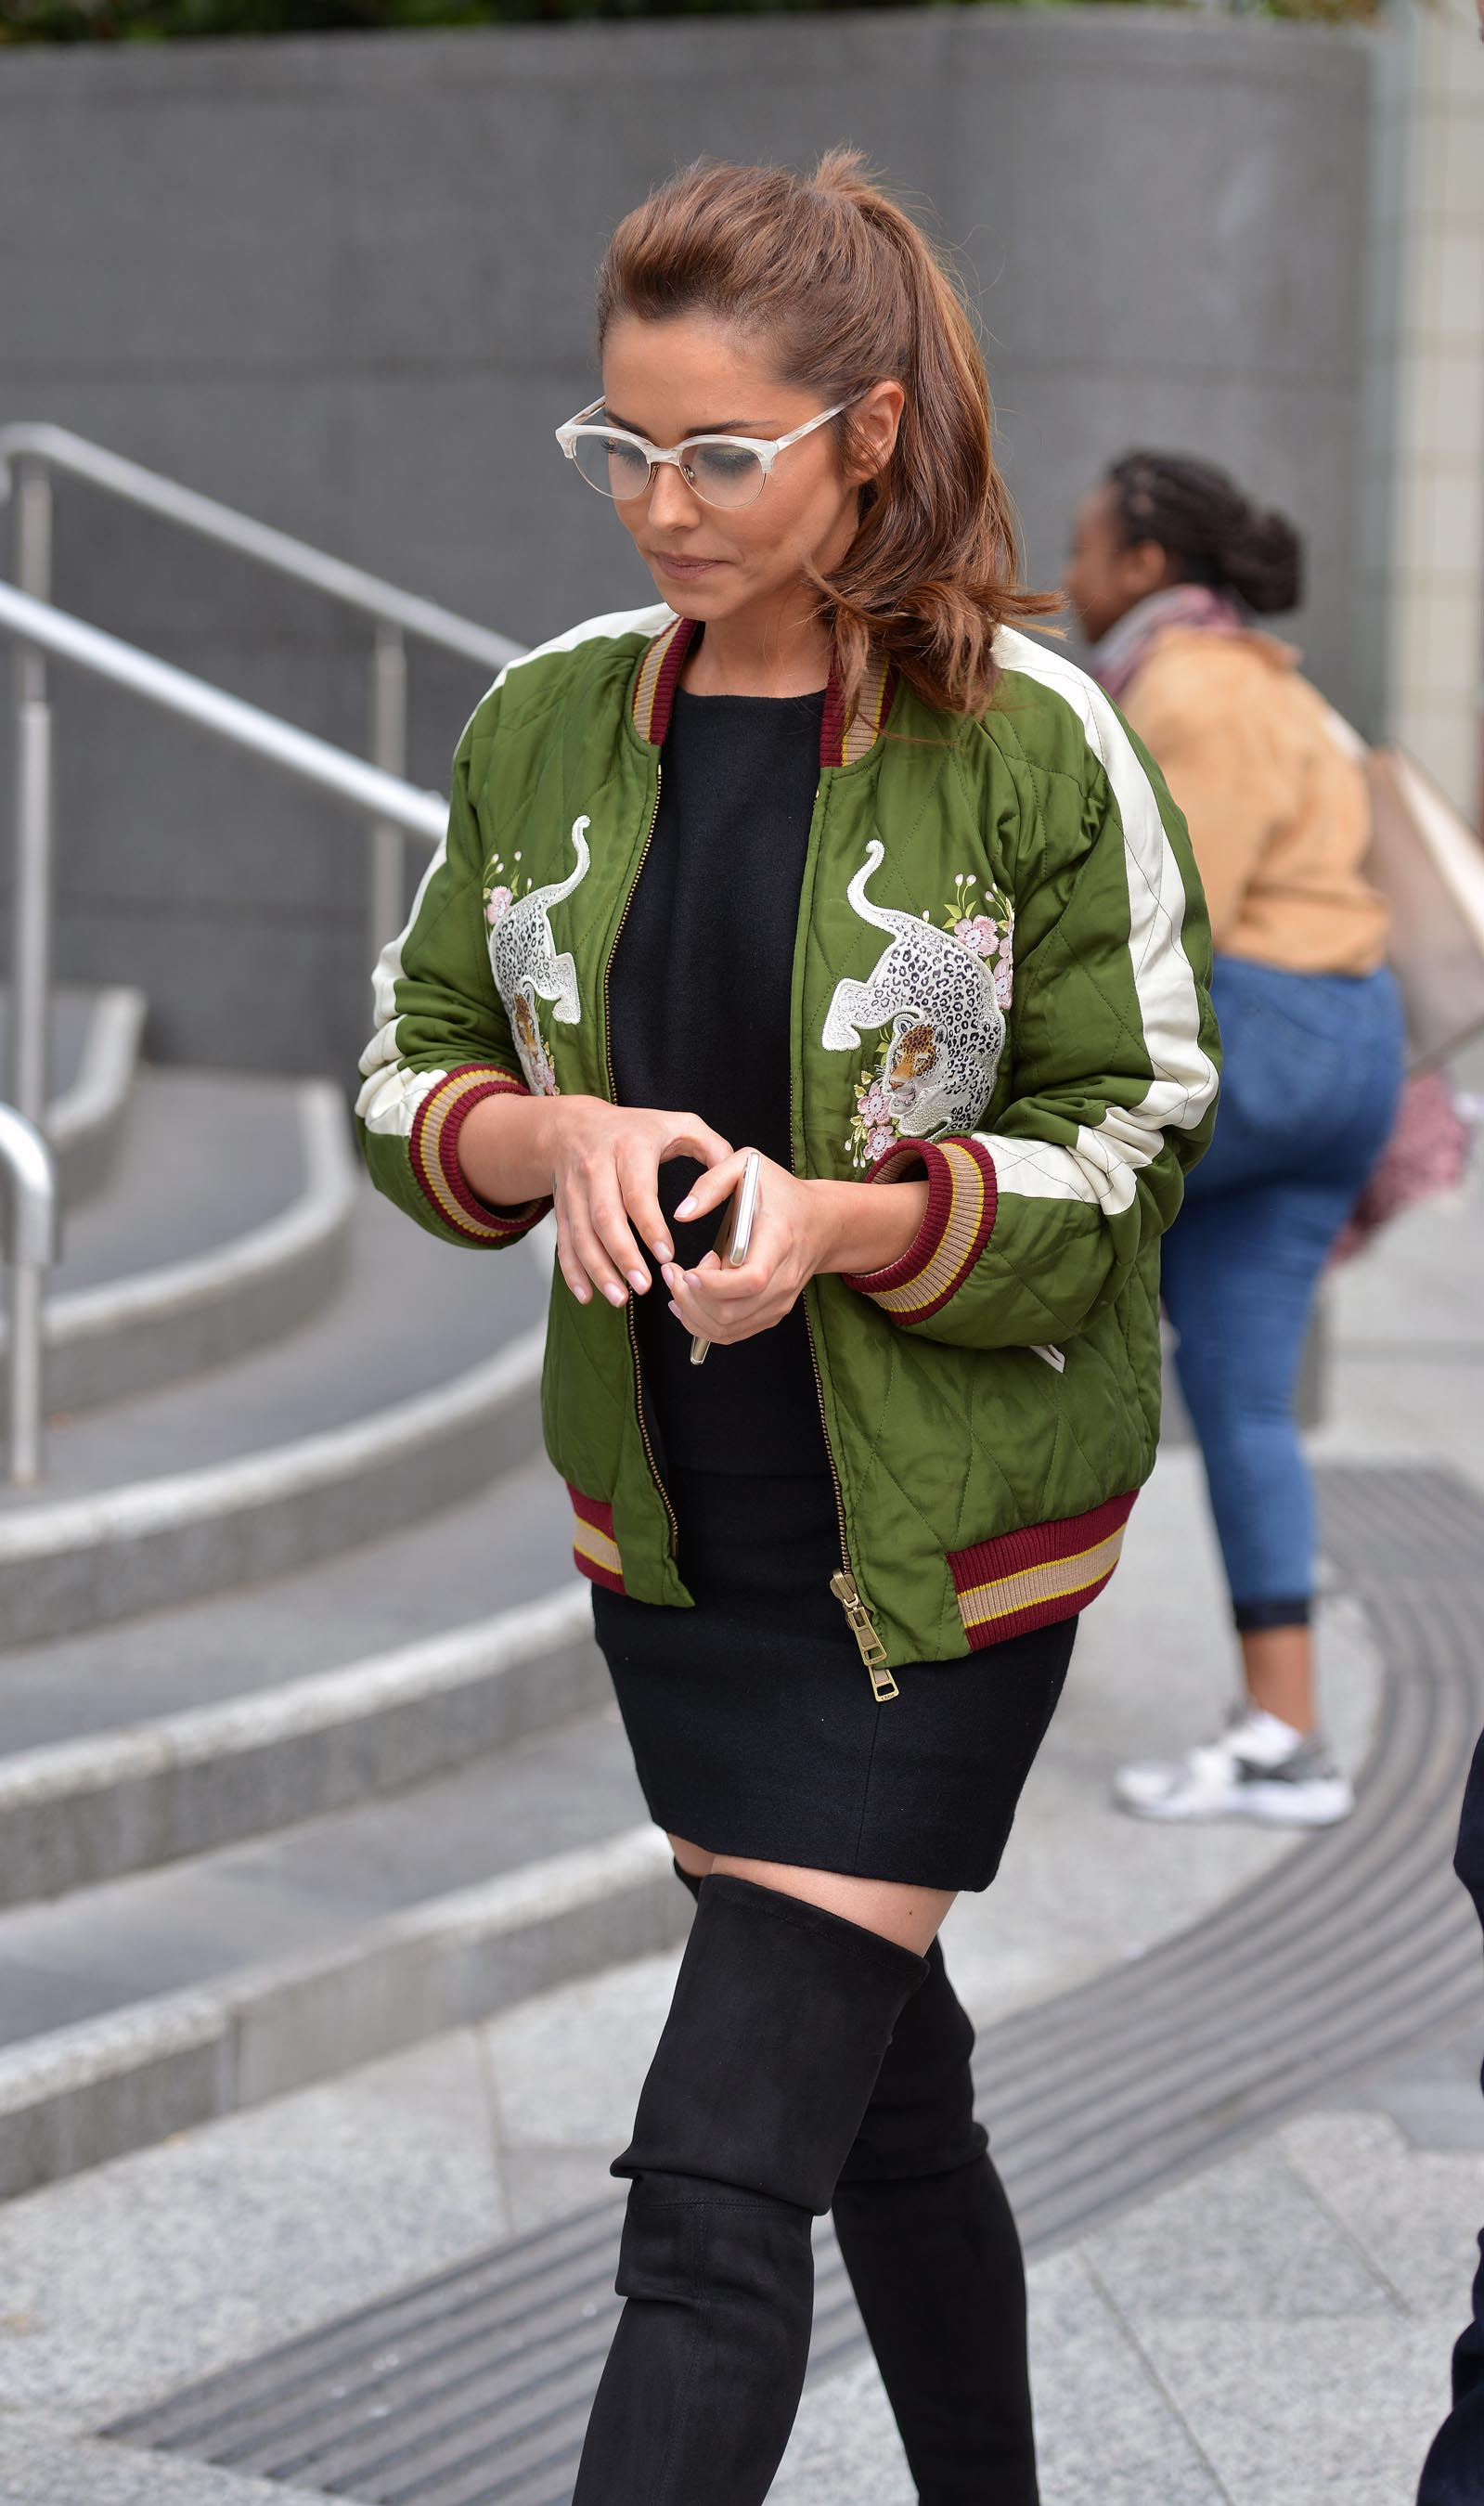 Cheryl Cole out and about in London